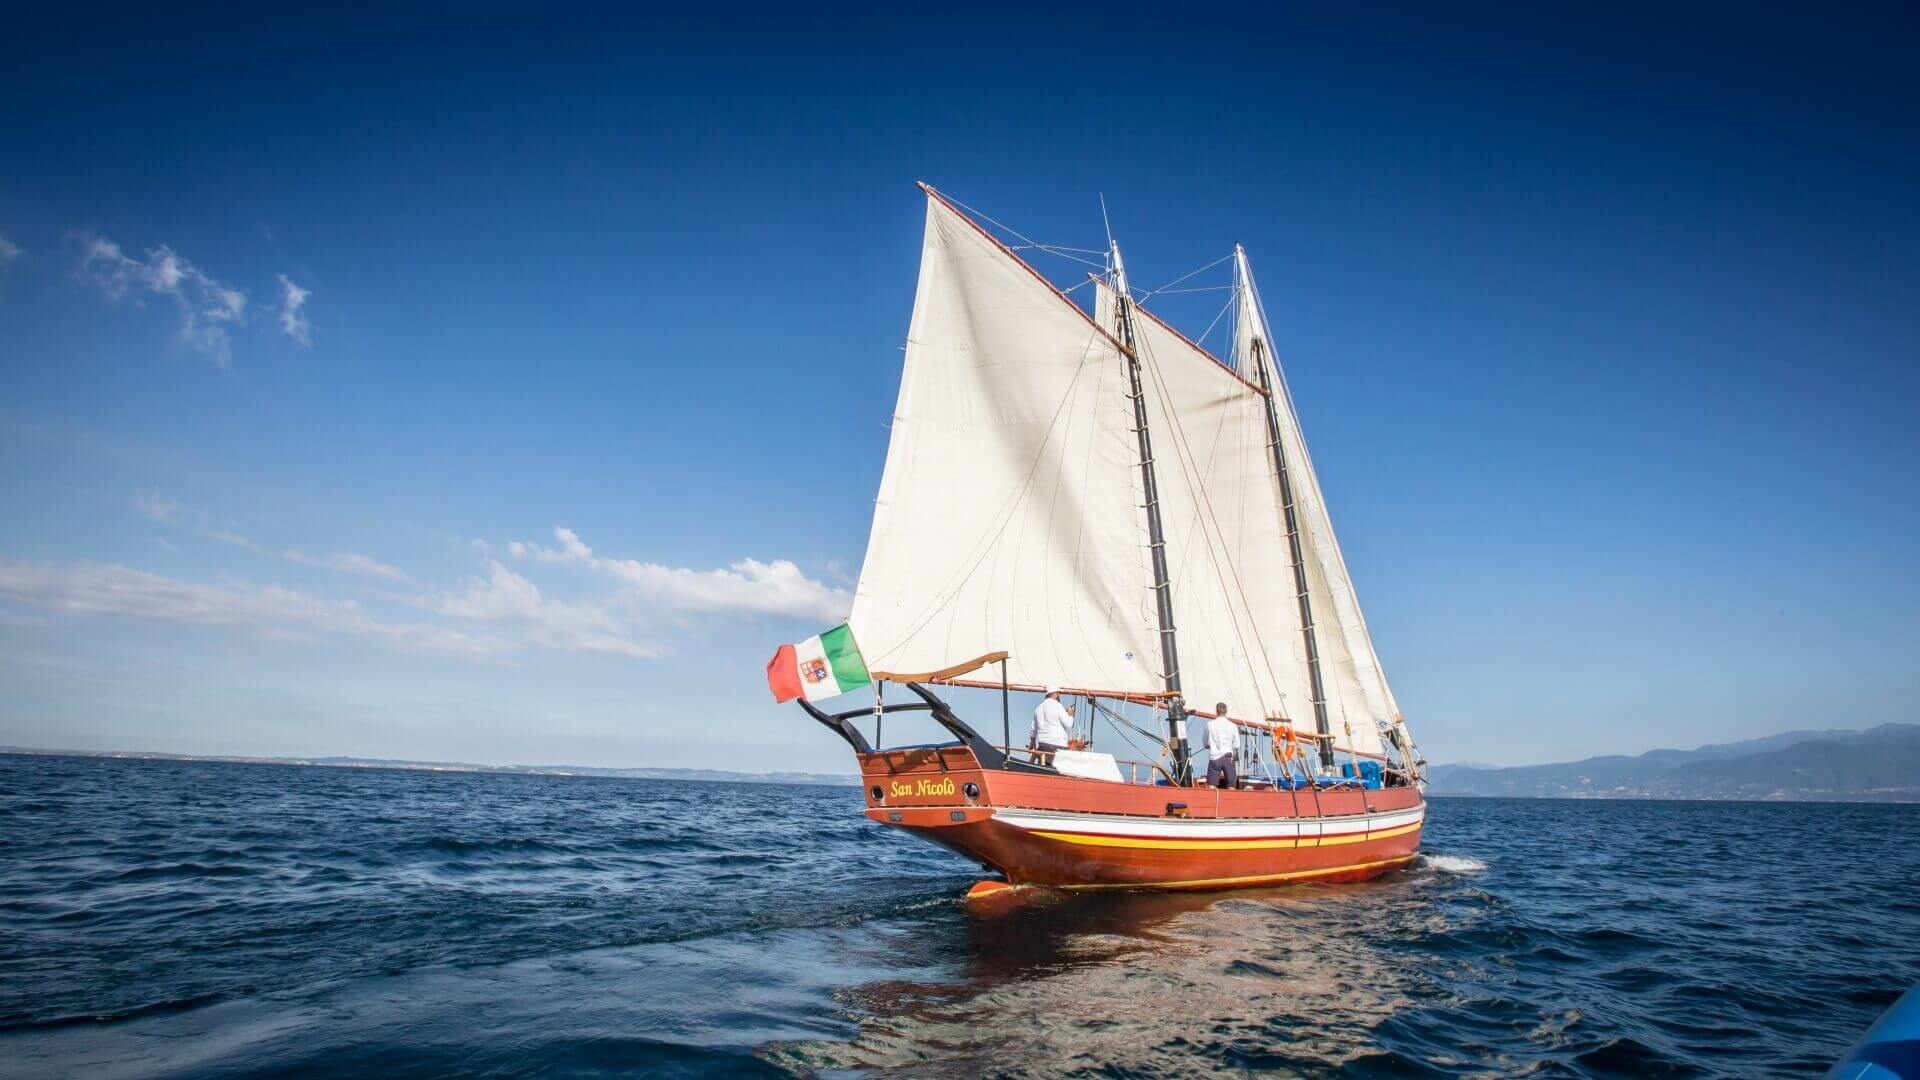 san nicolò sailing vessel special offer